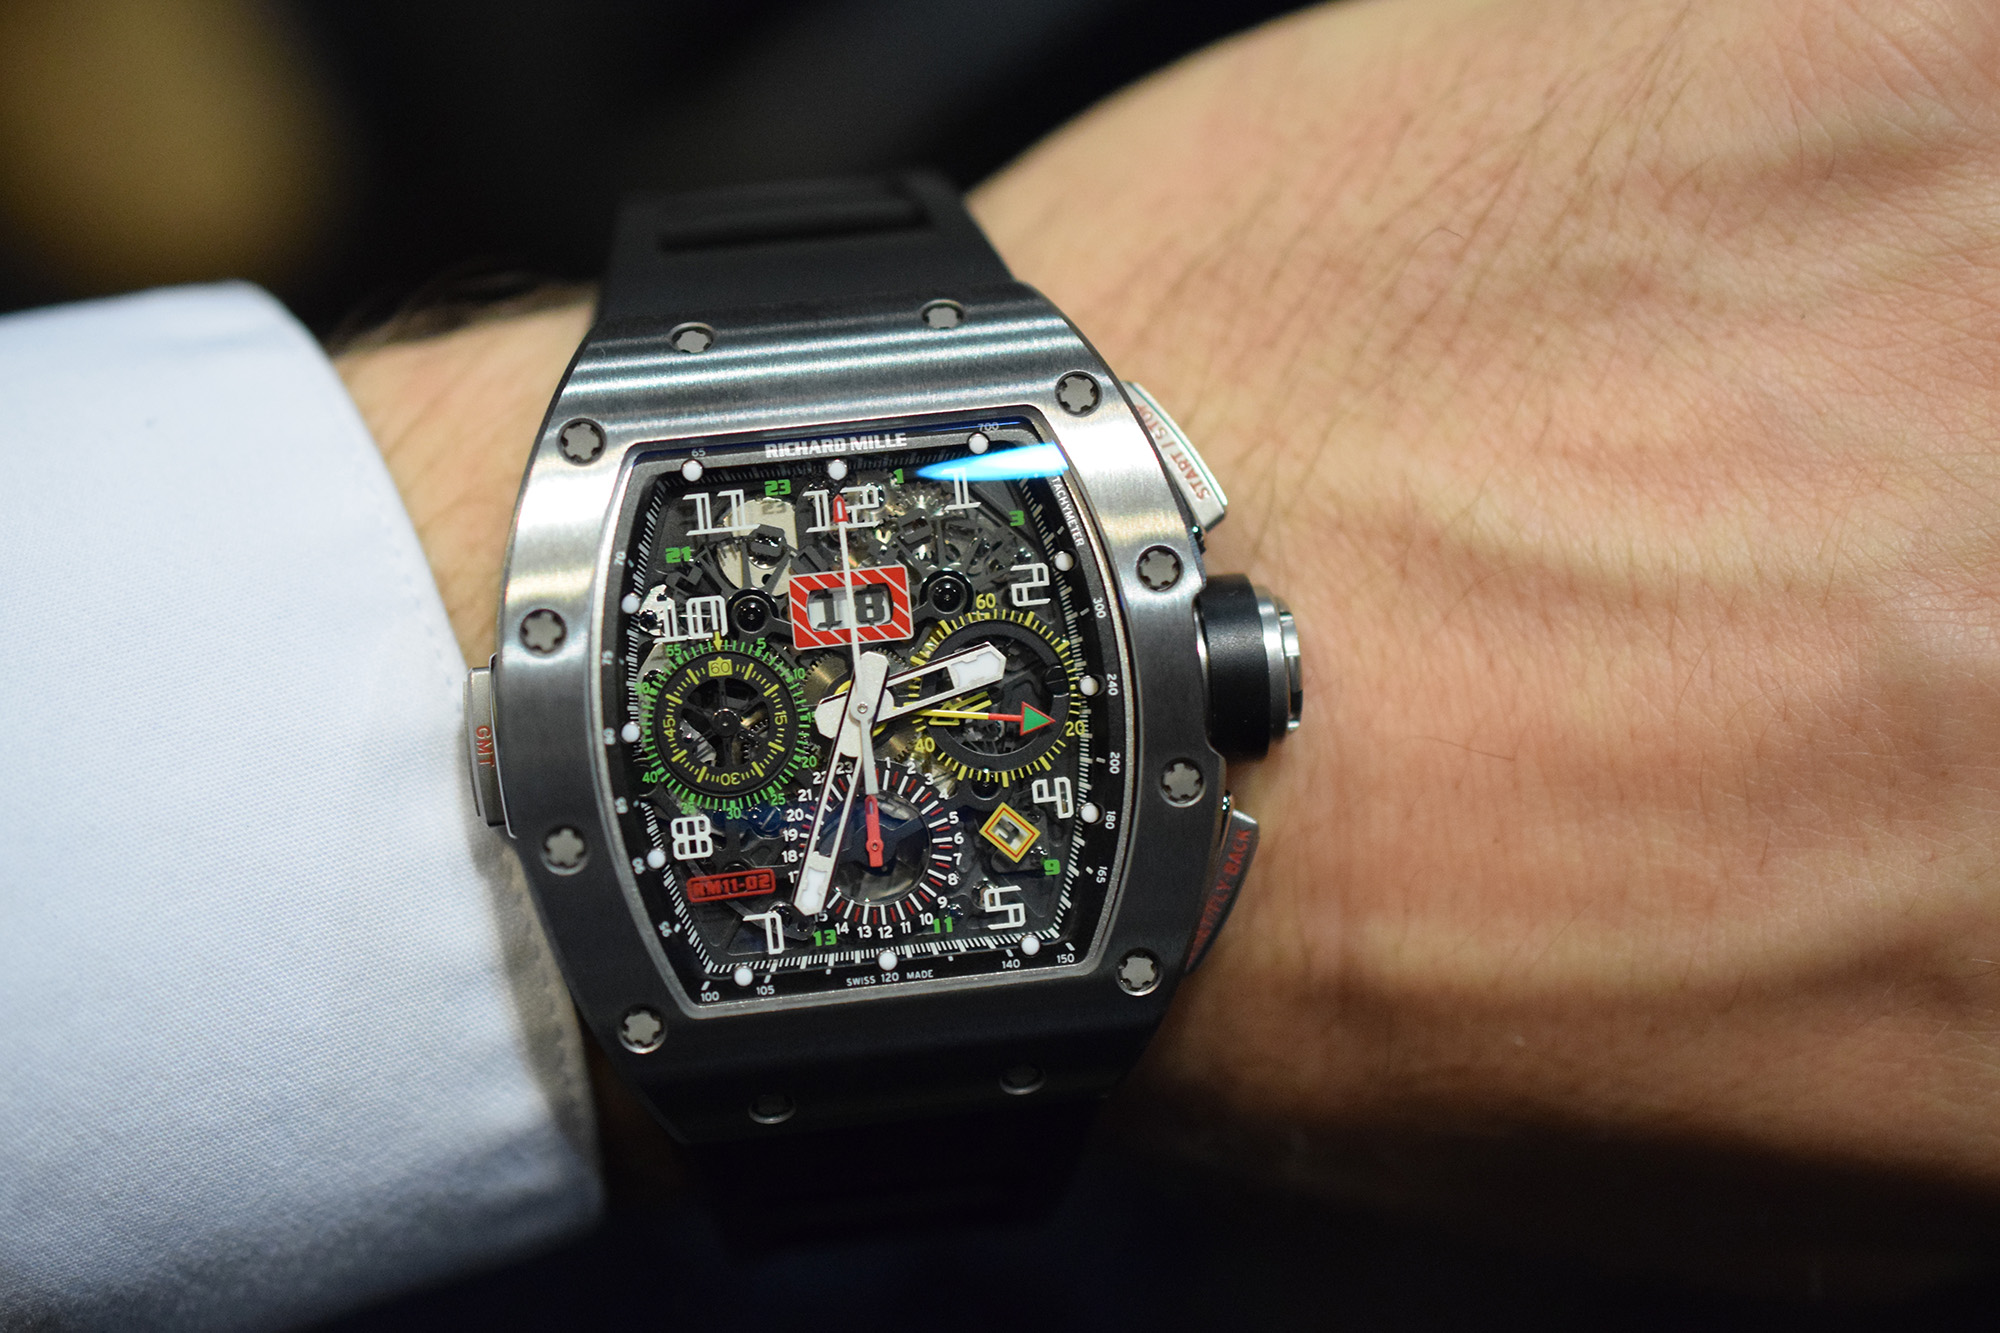 Richard Mille RM 11-02 Flyback Chronograph Dual Time Zone Jet Black Limited Edition Replica Watch